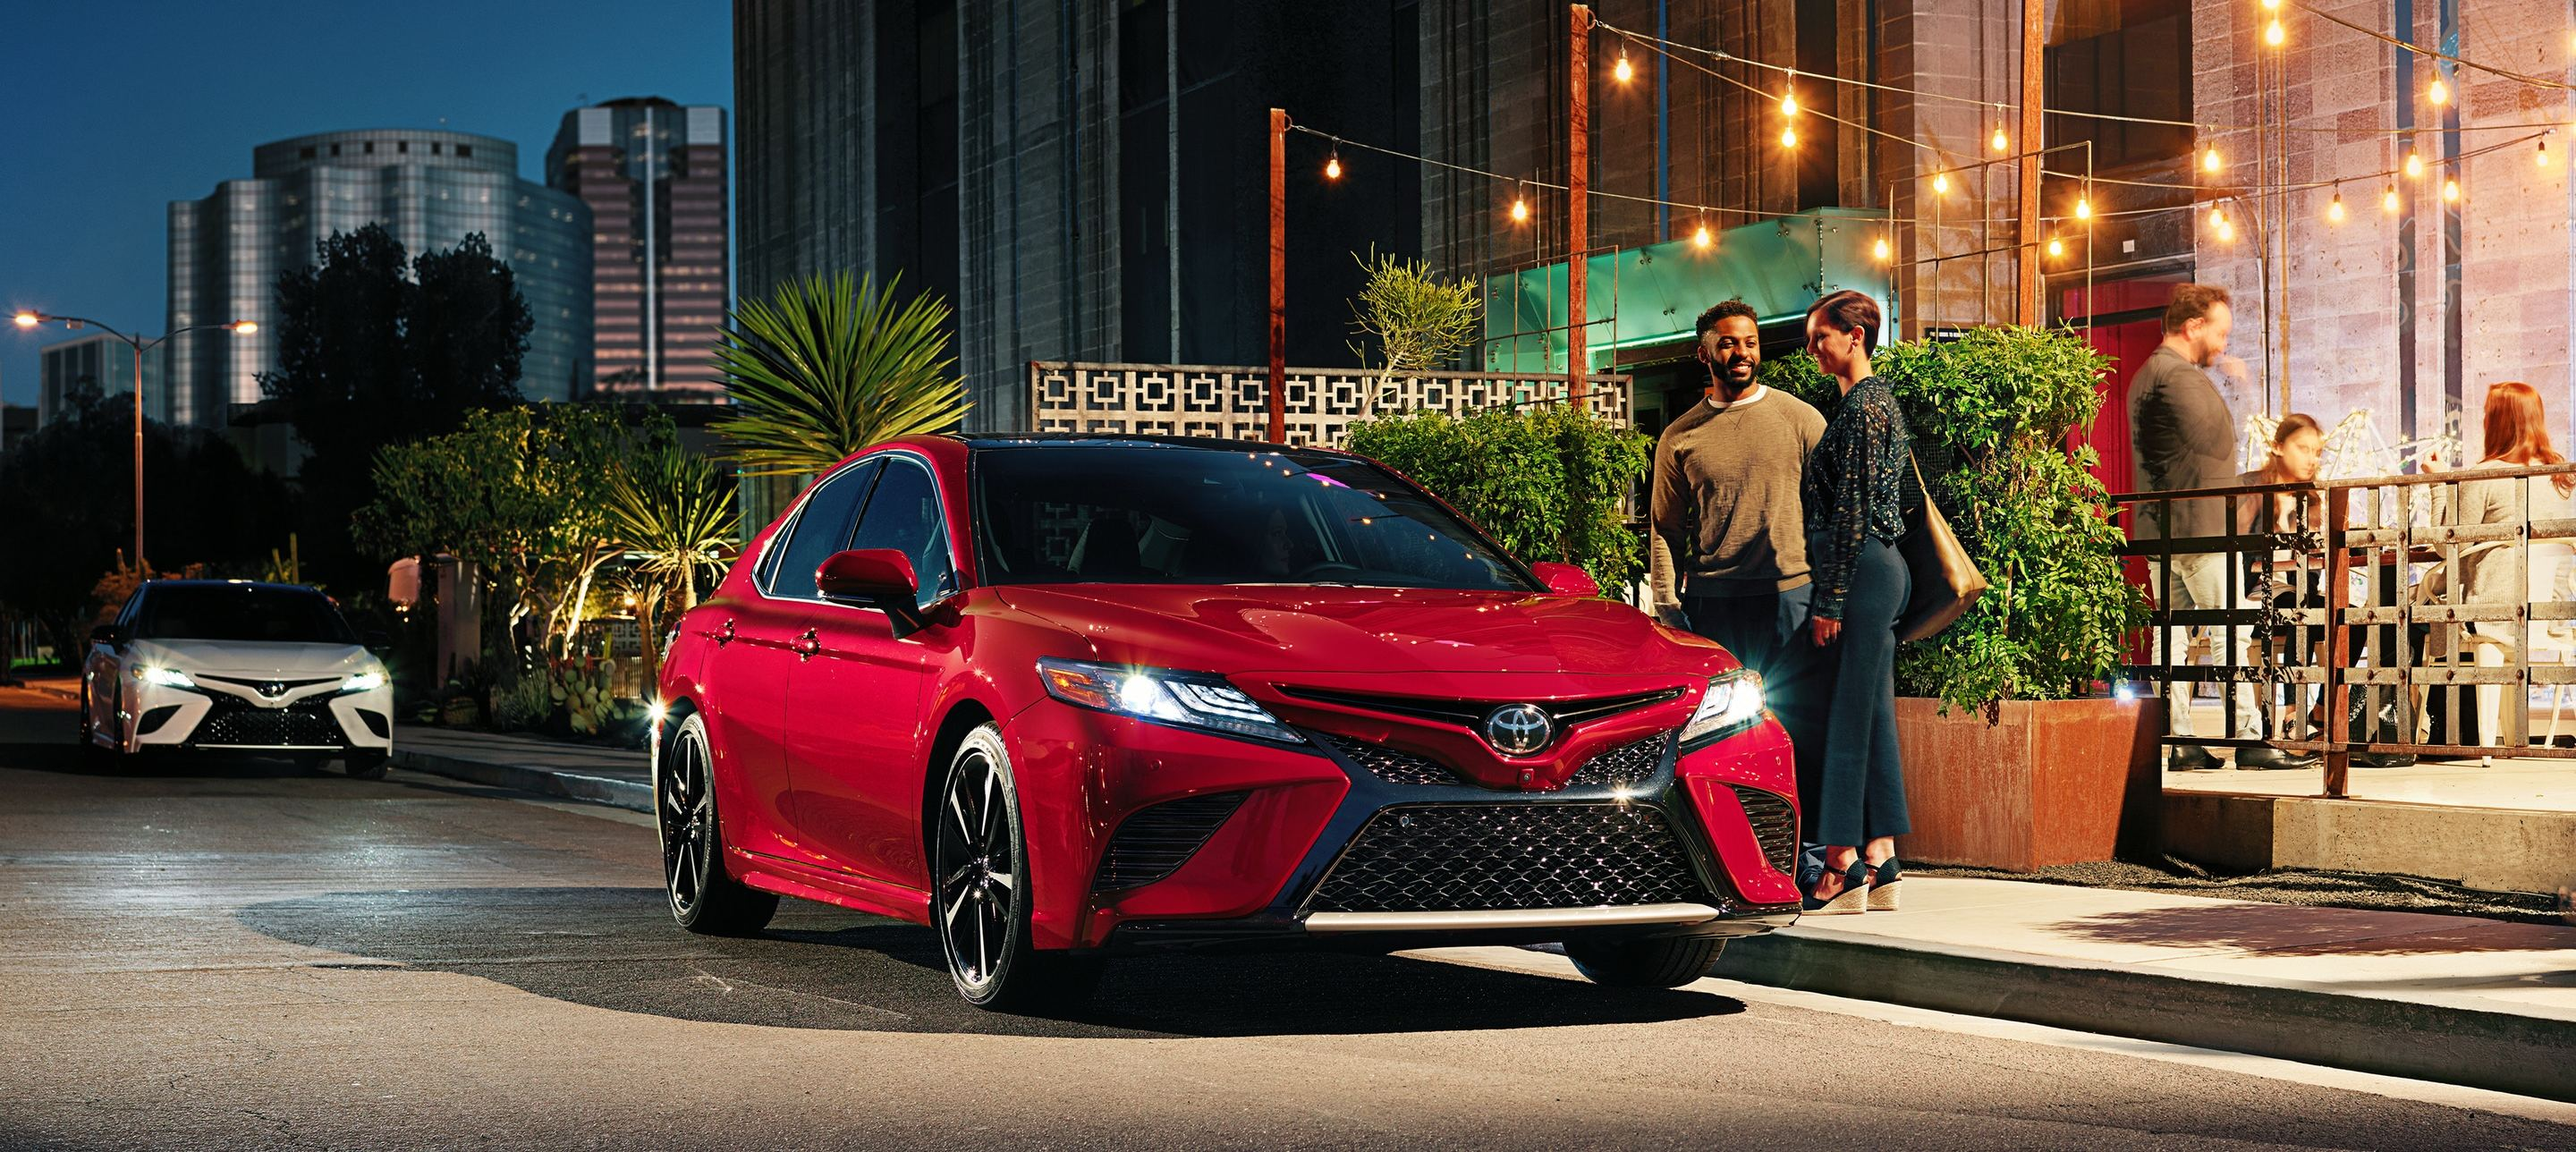 2020 Toyota Camry for Sale near Milpitas, CA